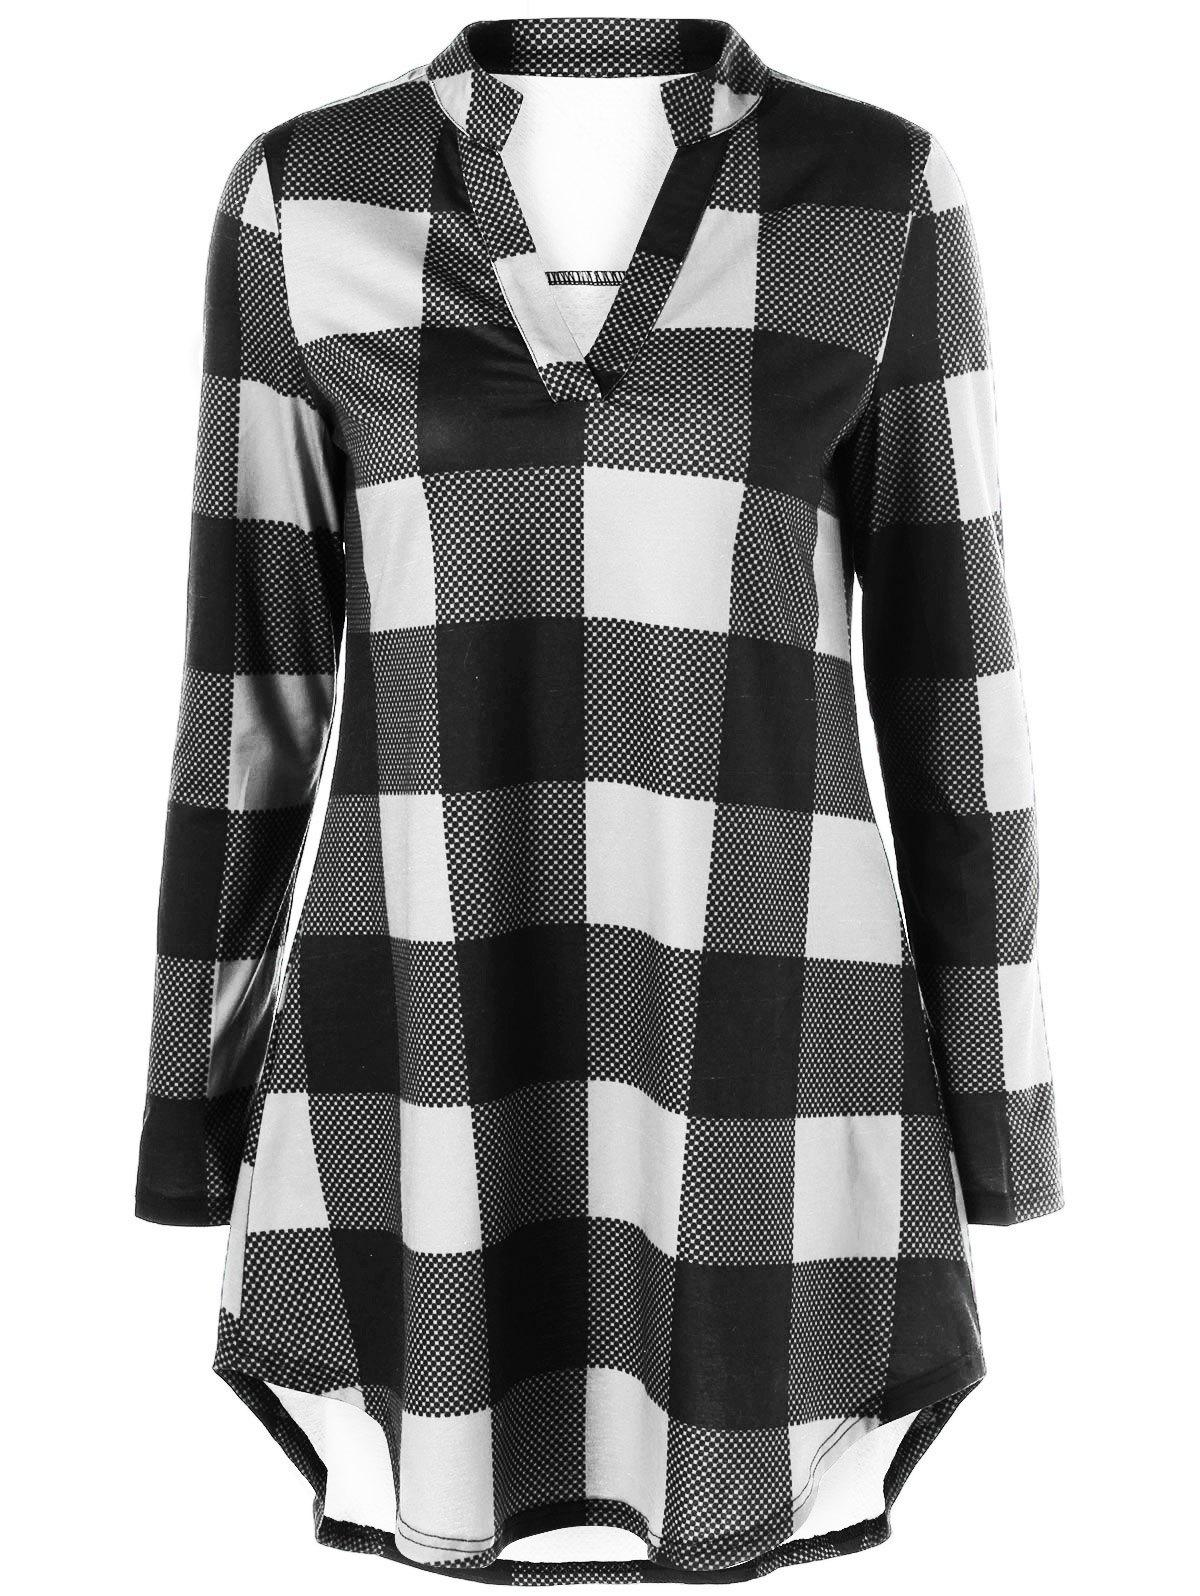 Split Neck Long Plaid Boyfriend T-ShirtWOMEN<br><br>Size: 2XL; Color: WHITE AND BLACK; Material: Polyester,Spandex; Sleeve Length: Full; Collar: V-Neck; Style: Casual; Pattern Type: Plaid; Season: Fall,Spring; Weight: 0.2780kg; Package Contents: 1 x T-Shirt;